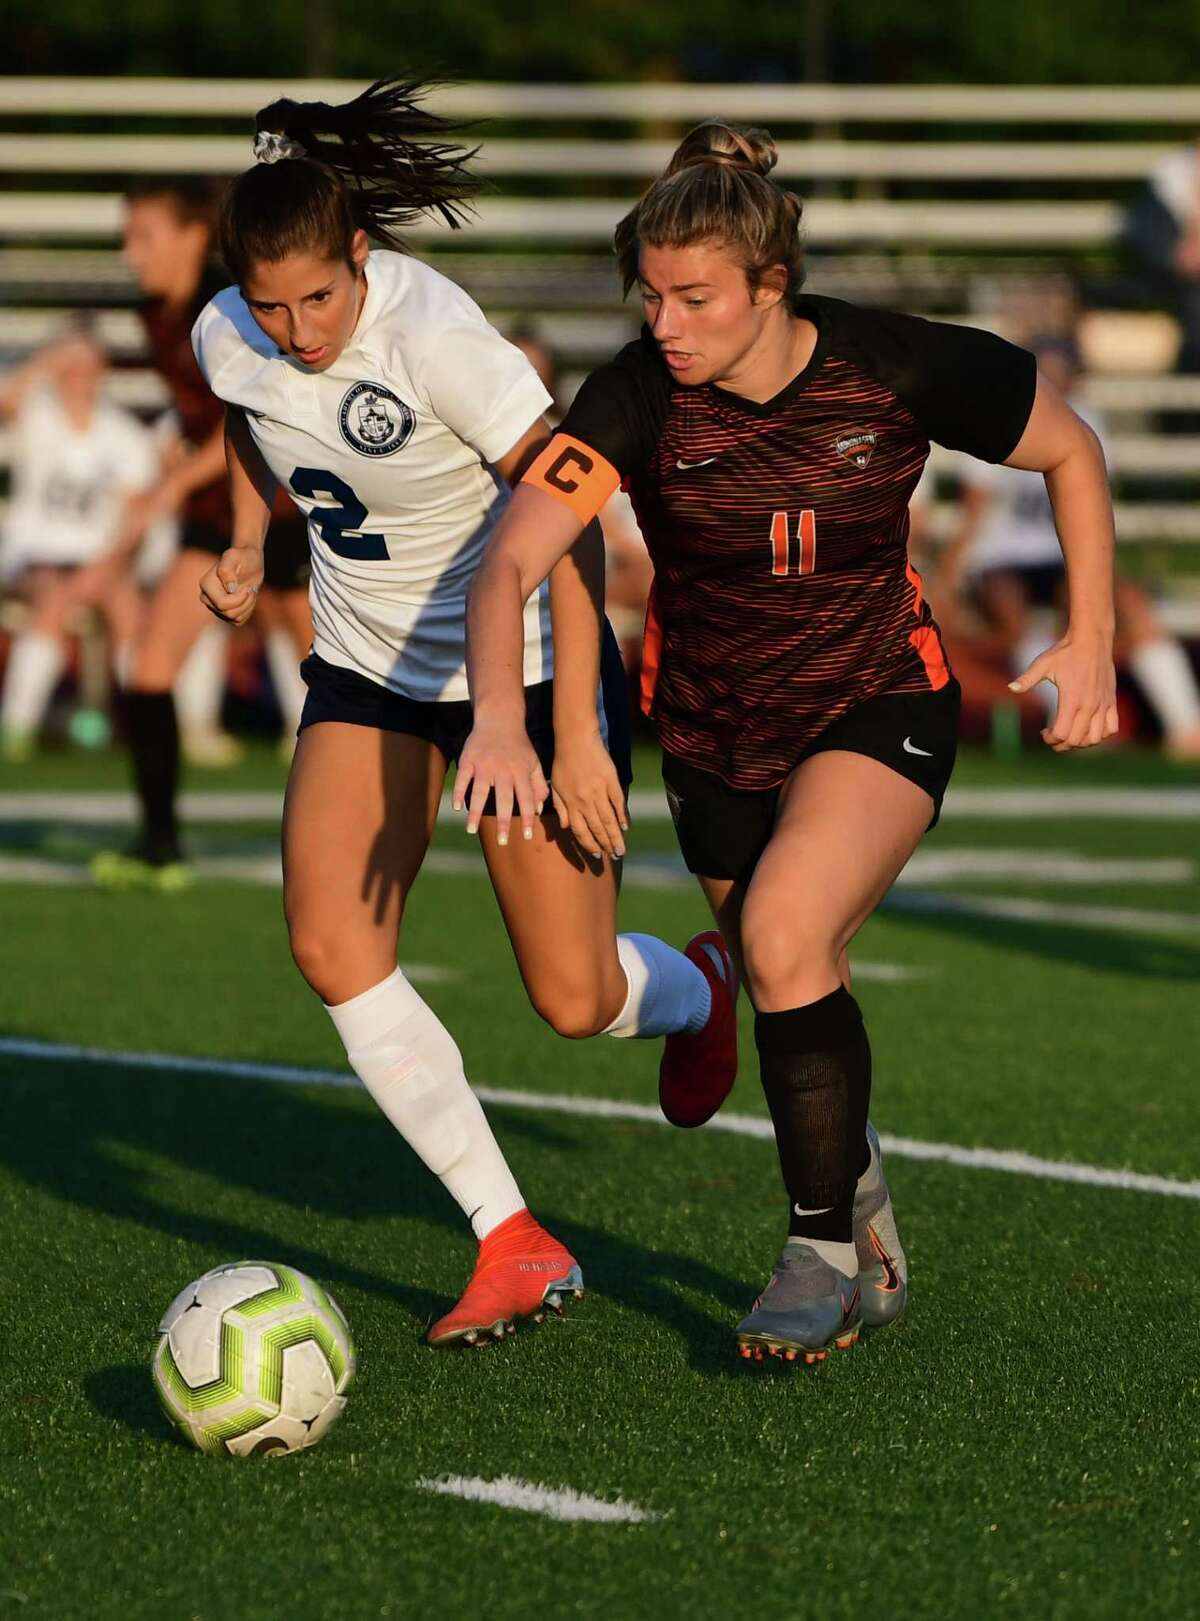 Academy of Holy Names' Samantha Germano, left, and Mohonasen's Alex Skoda battle for the ball during a soccer game on Wednesday, Sept. 11, 2019 in Rotterdam N.Y. (Lori Van Buren/Times Union)